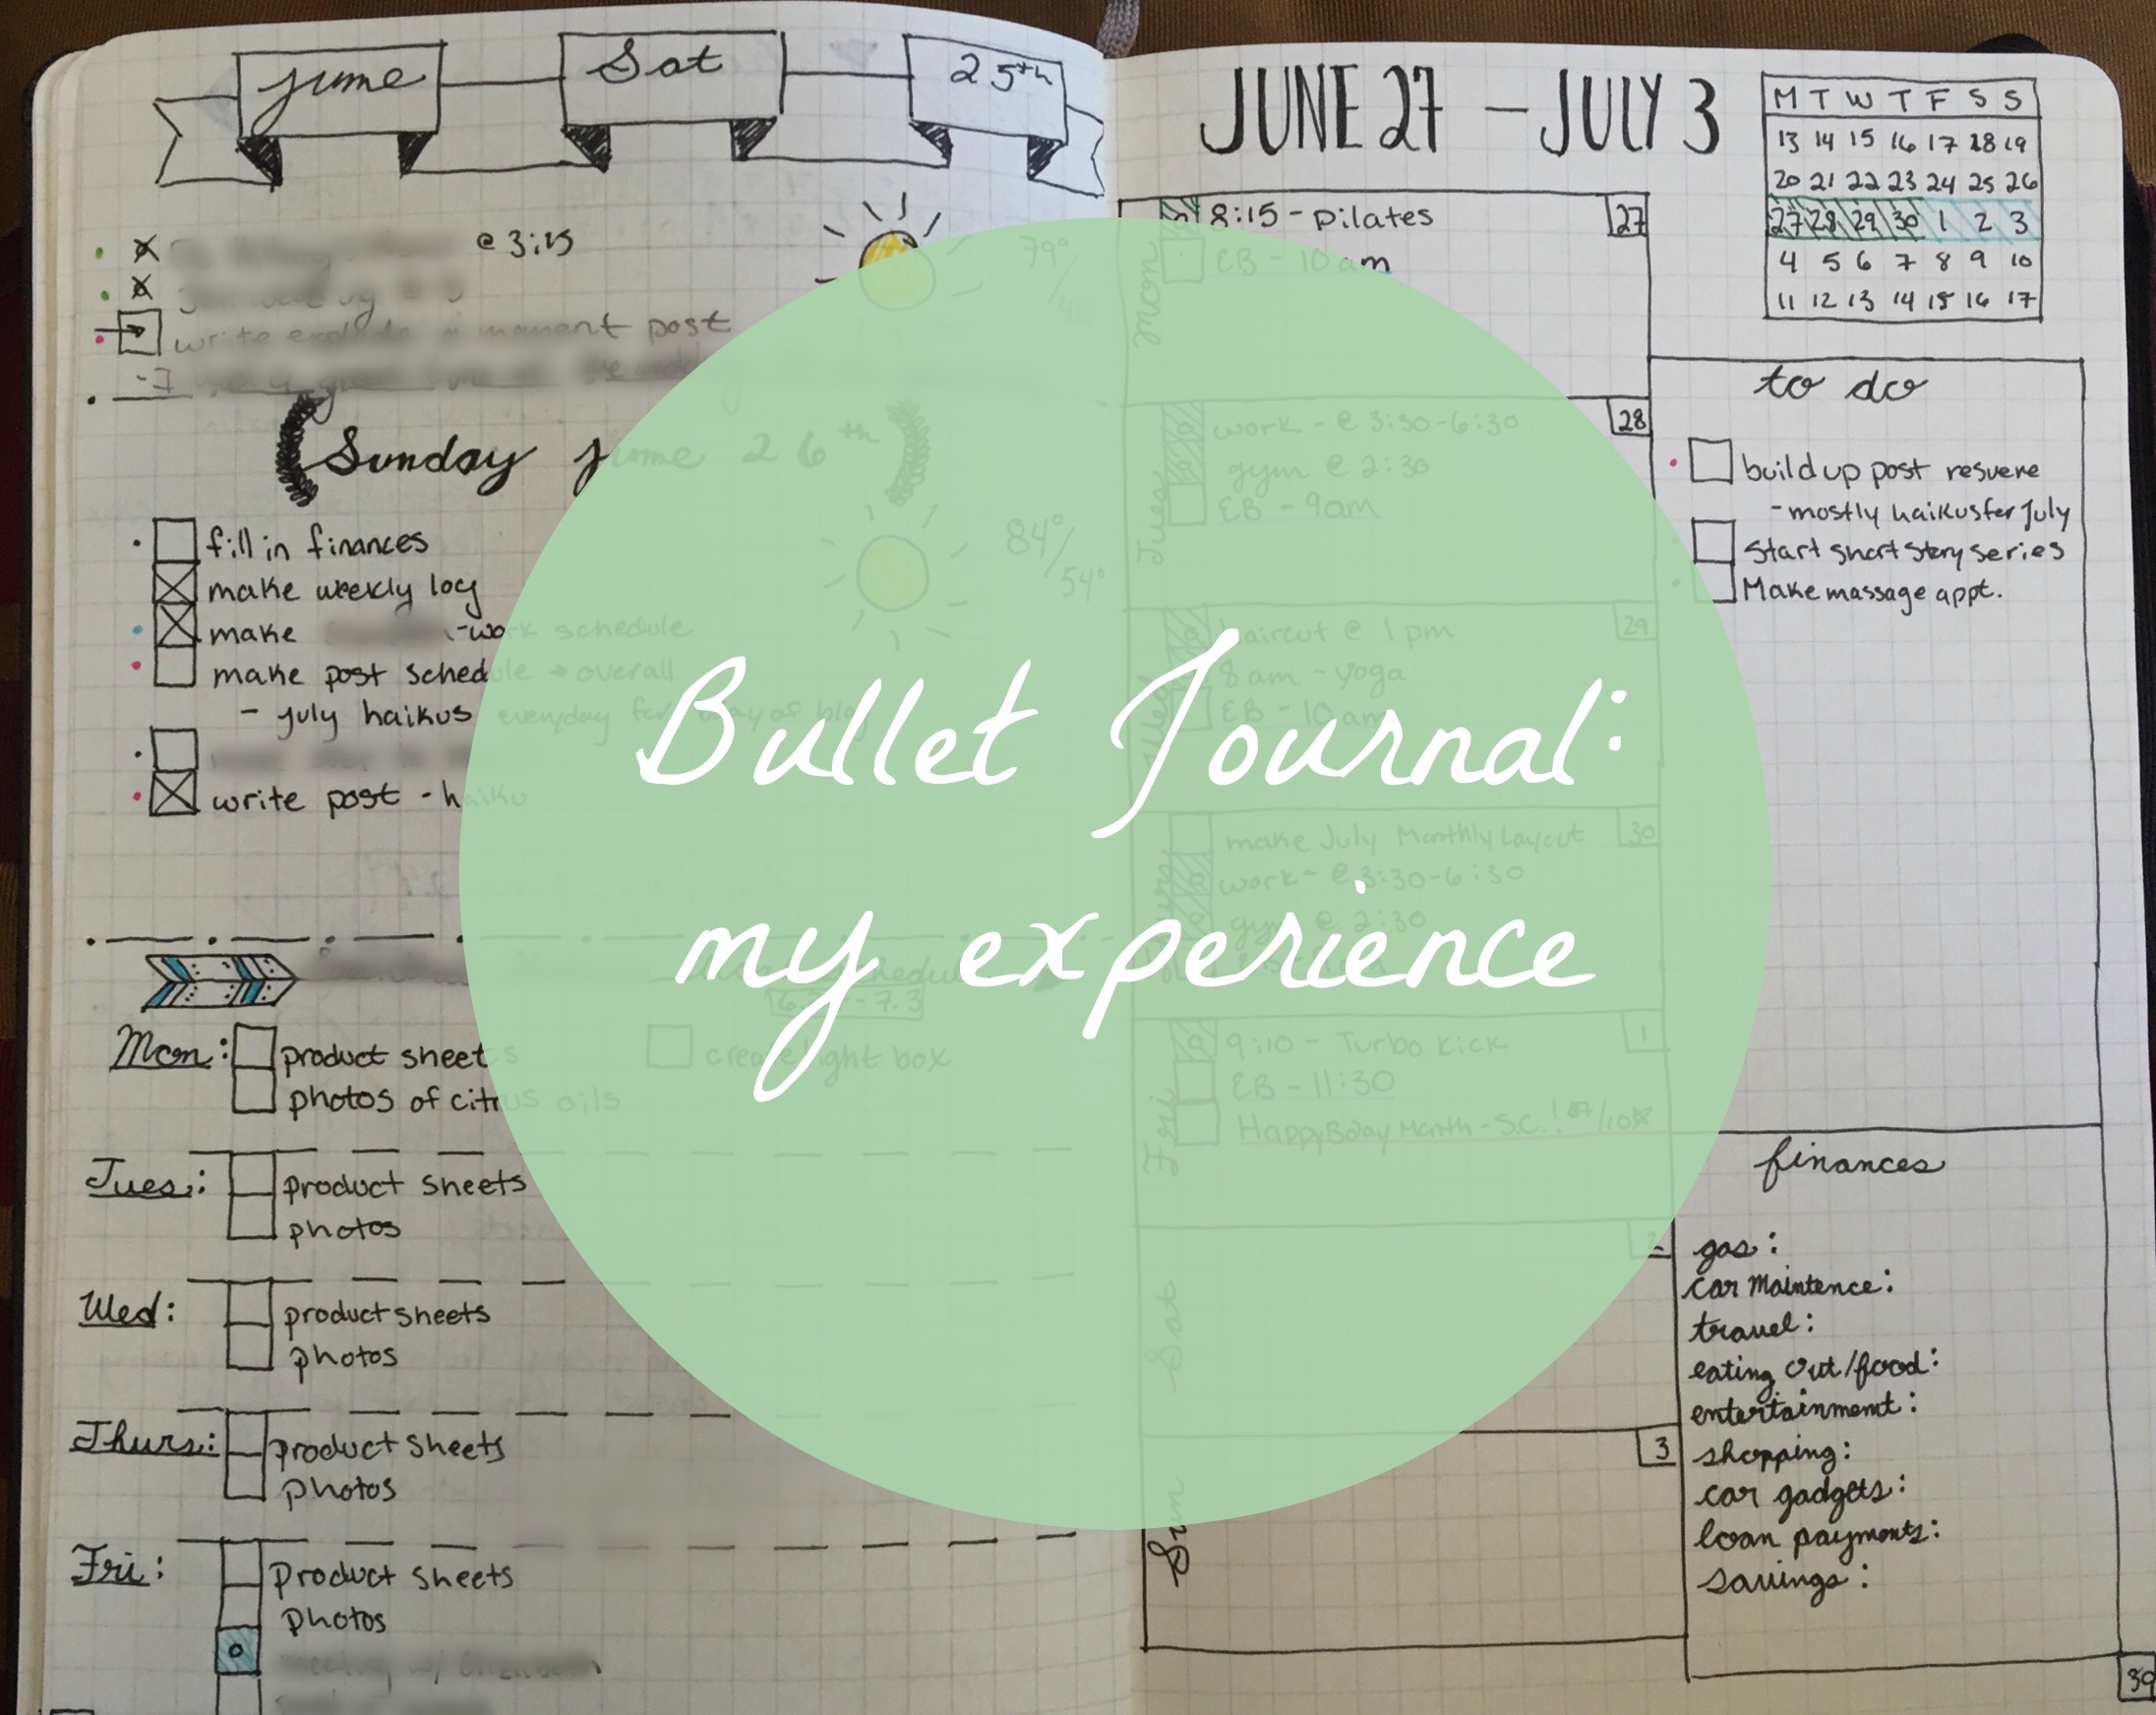 My Experience with the Bullet Journal